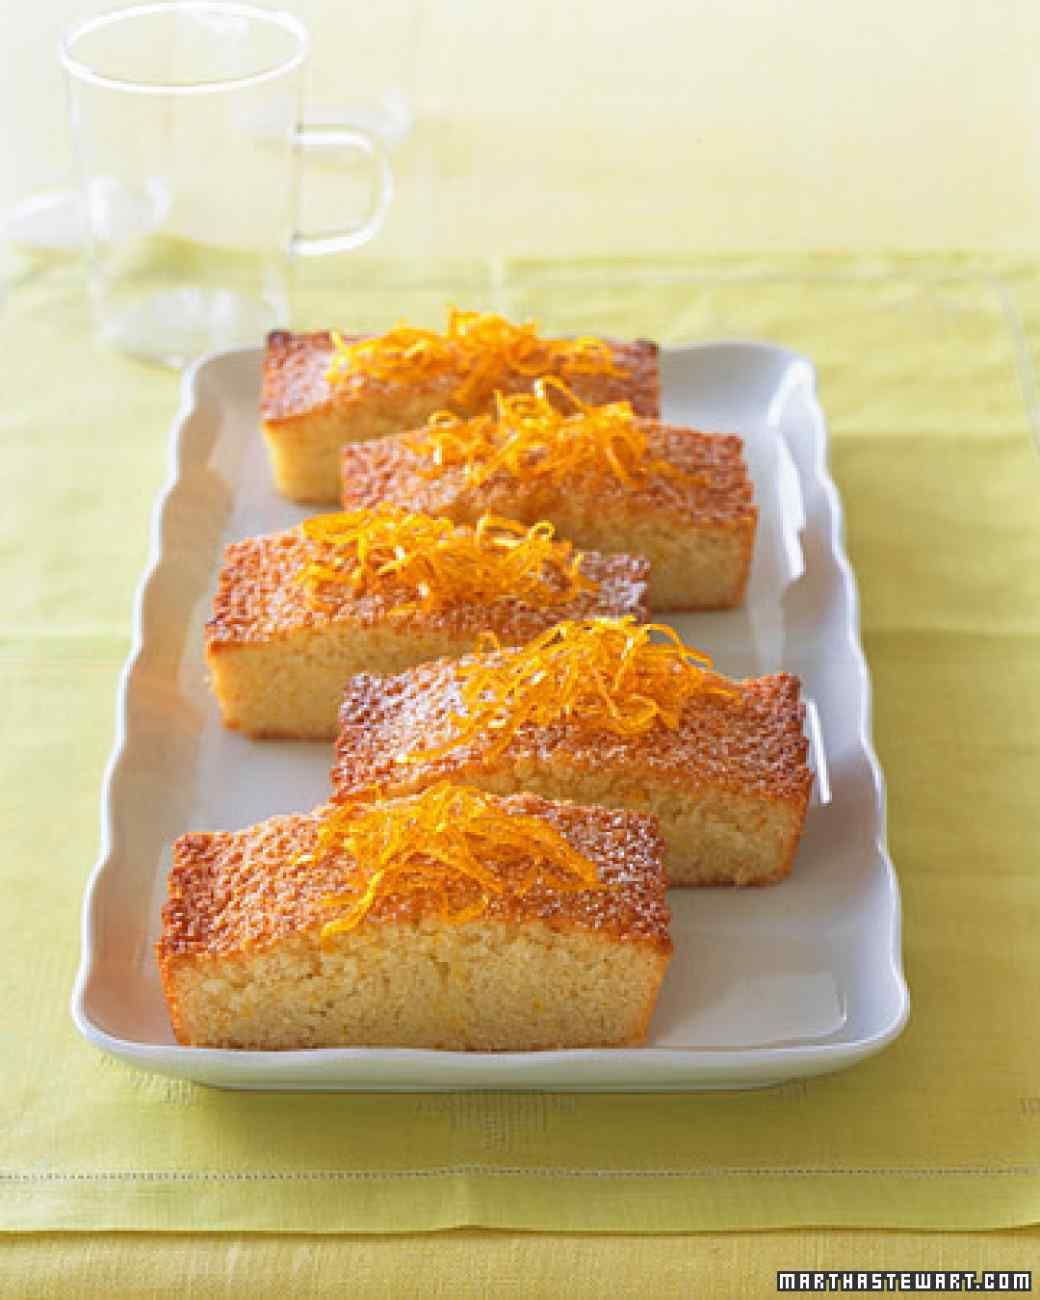 Rich and buttery, this French cake is named for its resemblance to a banker's bar of gold. We've added flecks of orange zest to punctuate the classic almond-flavored batter and baked it in a tart pan, rather than in the traditional individual molds.